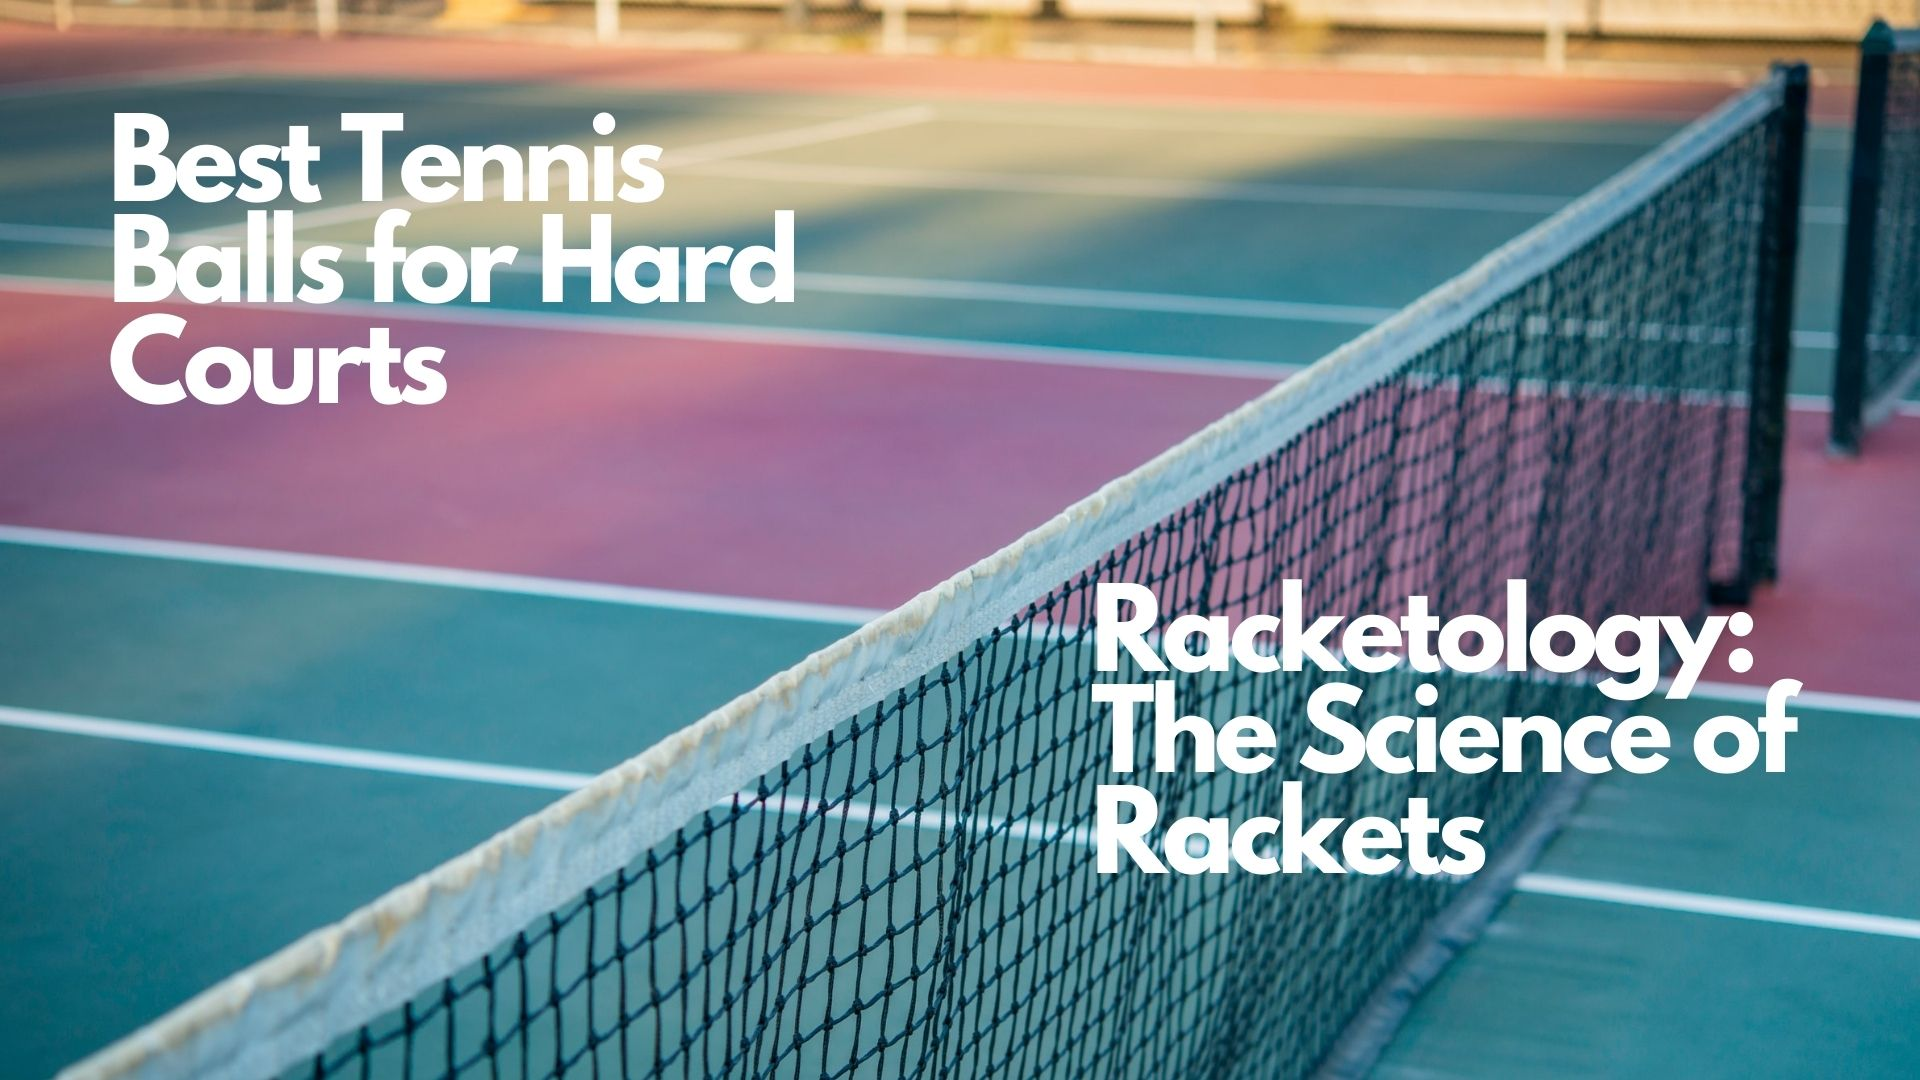 Best Tennis Balls for Hard Courts